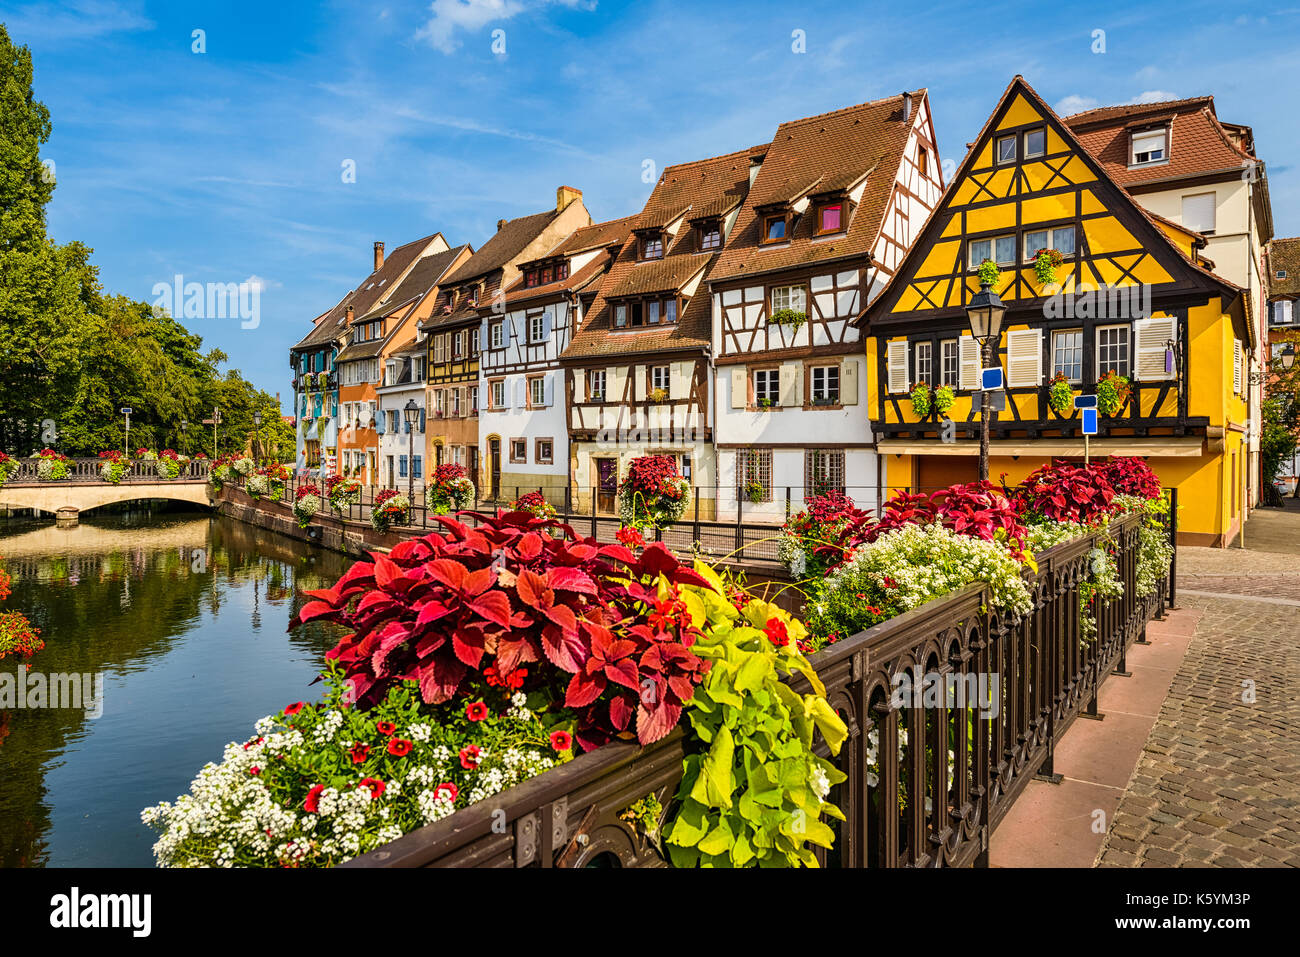 Old town of Colmar, Alsace, France on a sunny day - Stock Image